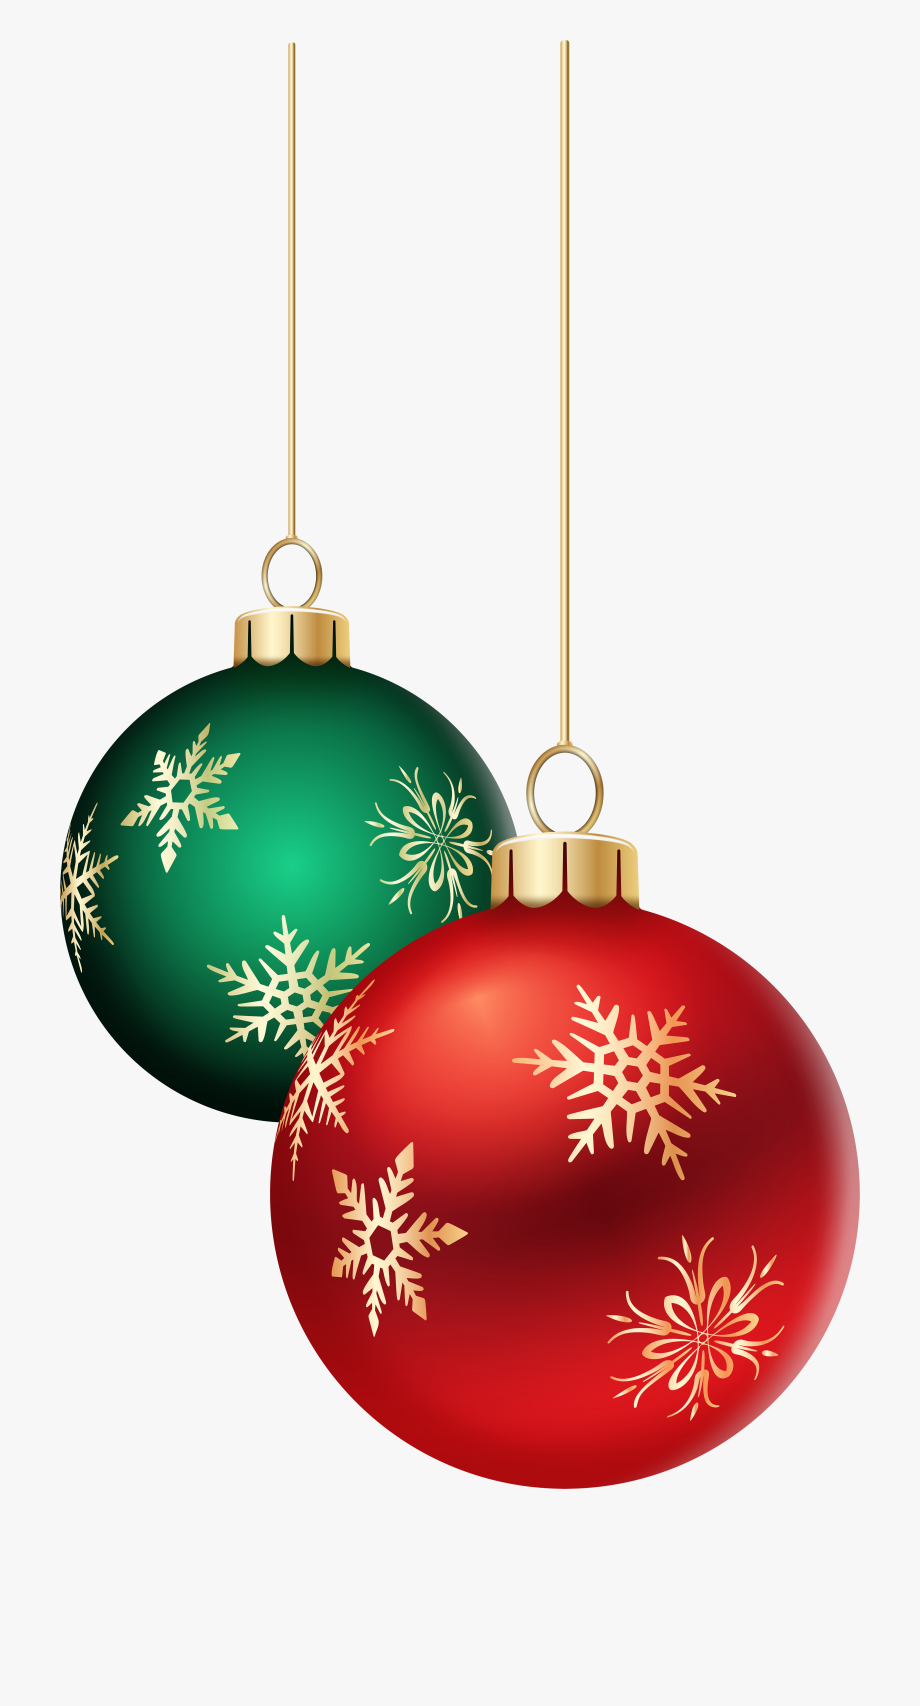 Christmas balls images free clipart black and white picture black and white Black And White - Hanging Christmas Ball Png #191457 - Free Cliparts ... picture black and white